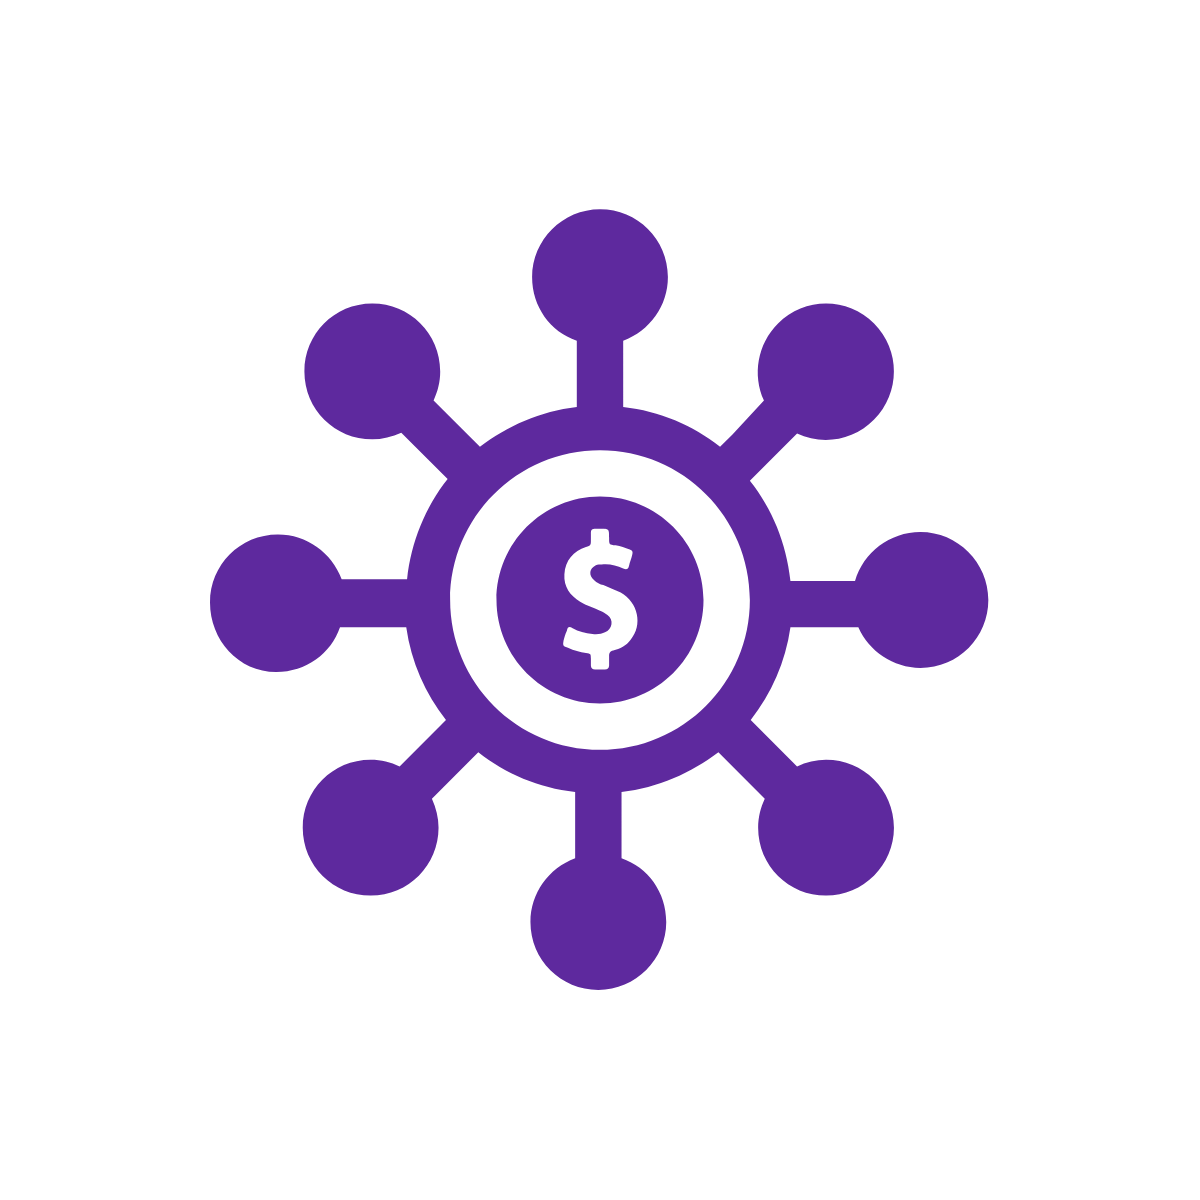 Icon of dollar sign with circles connected to it